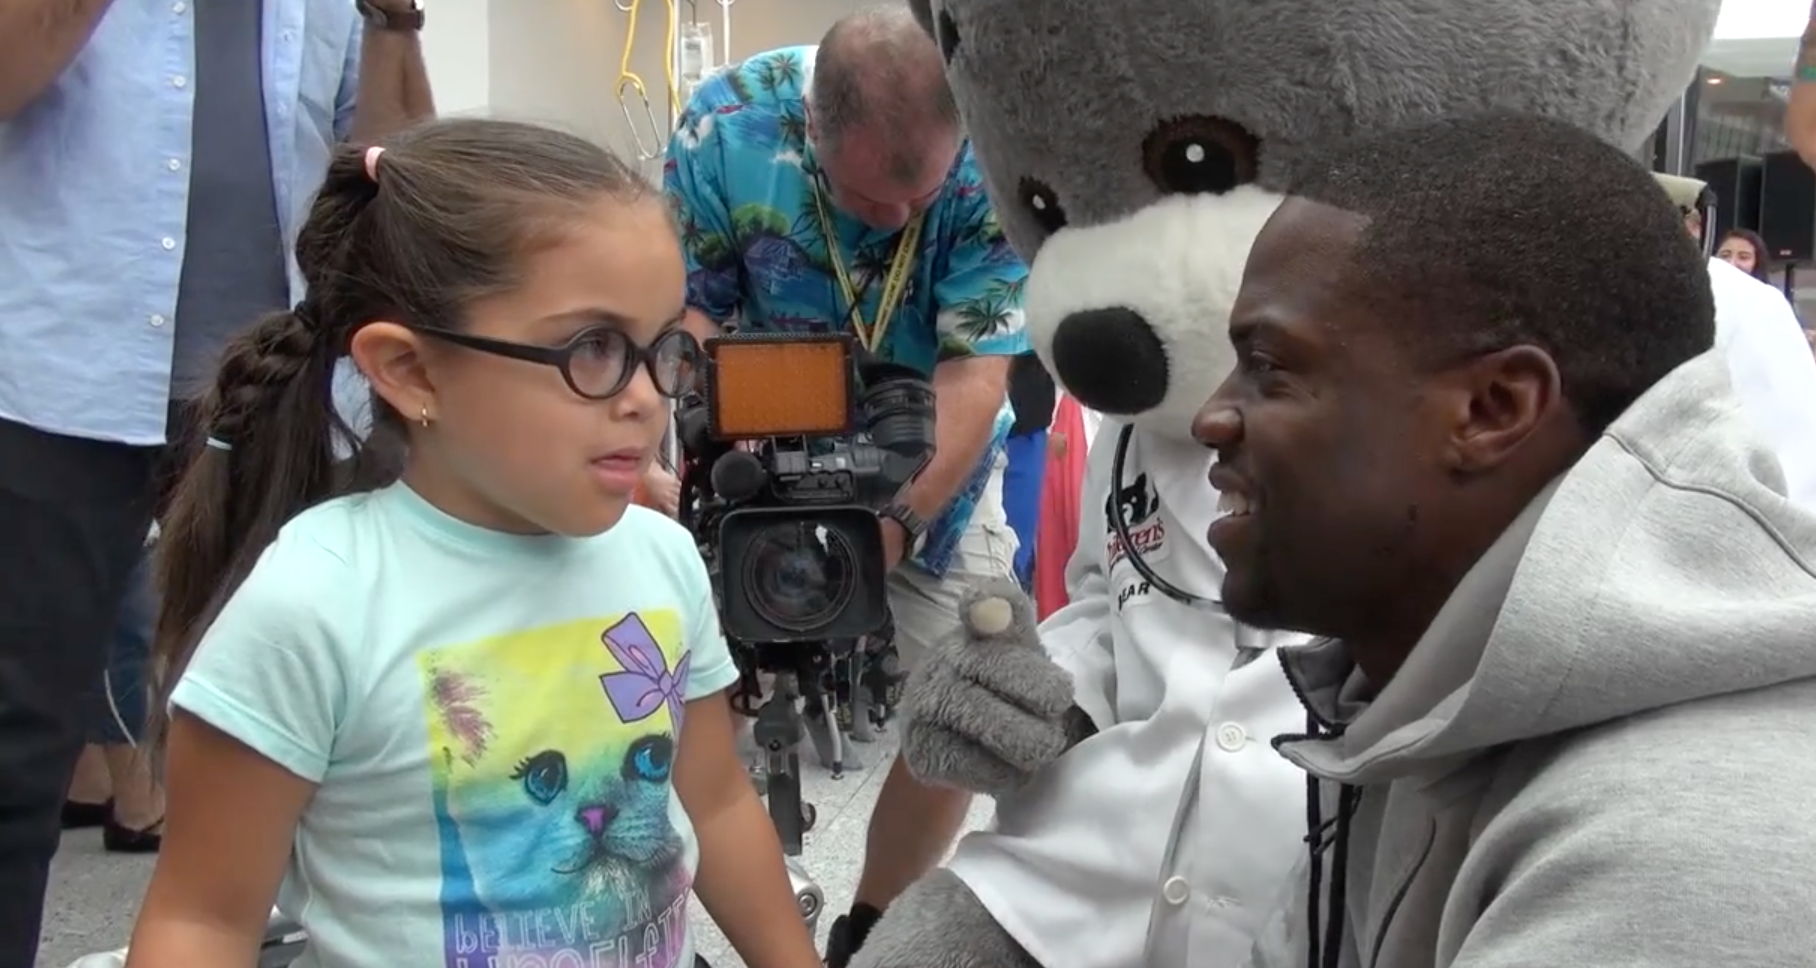 Kevin Hart promotes healthy lifestyle at Children's National Medical Center